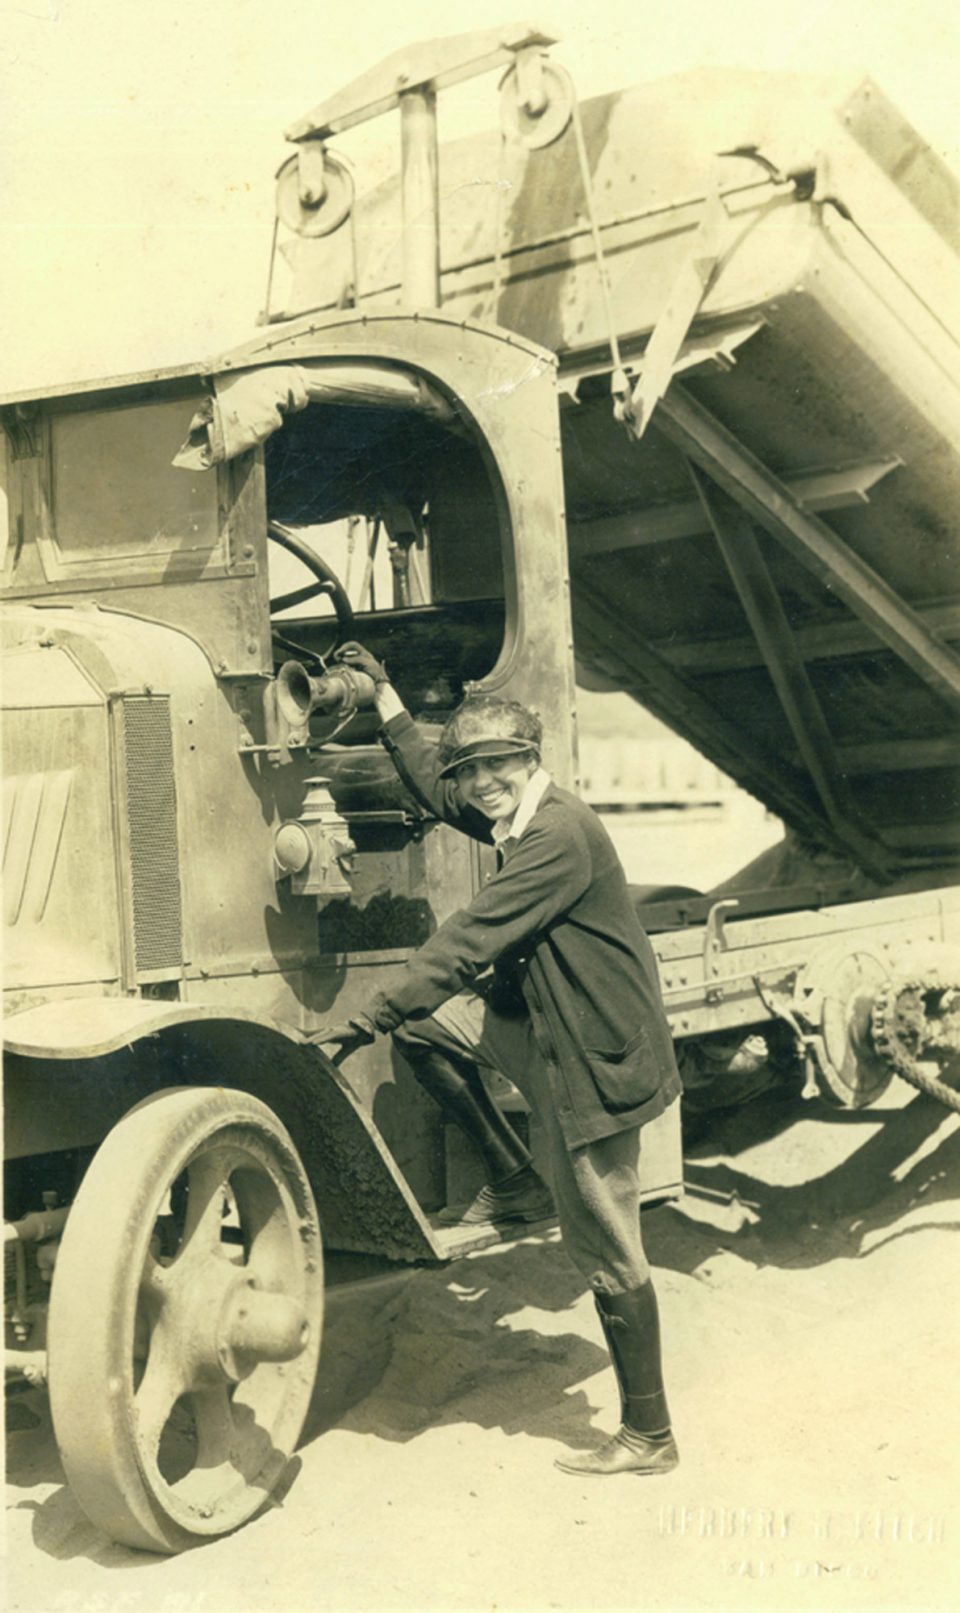 Lilian J. Rice as lead truck driver, thwarting a strike by hauling crews that threatened the beginnings of the Rancho Santa Fe project, 1923. Courtesy of Diane Welch